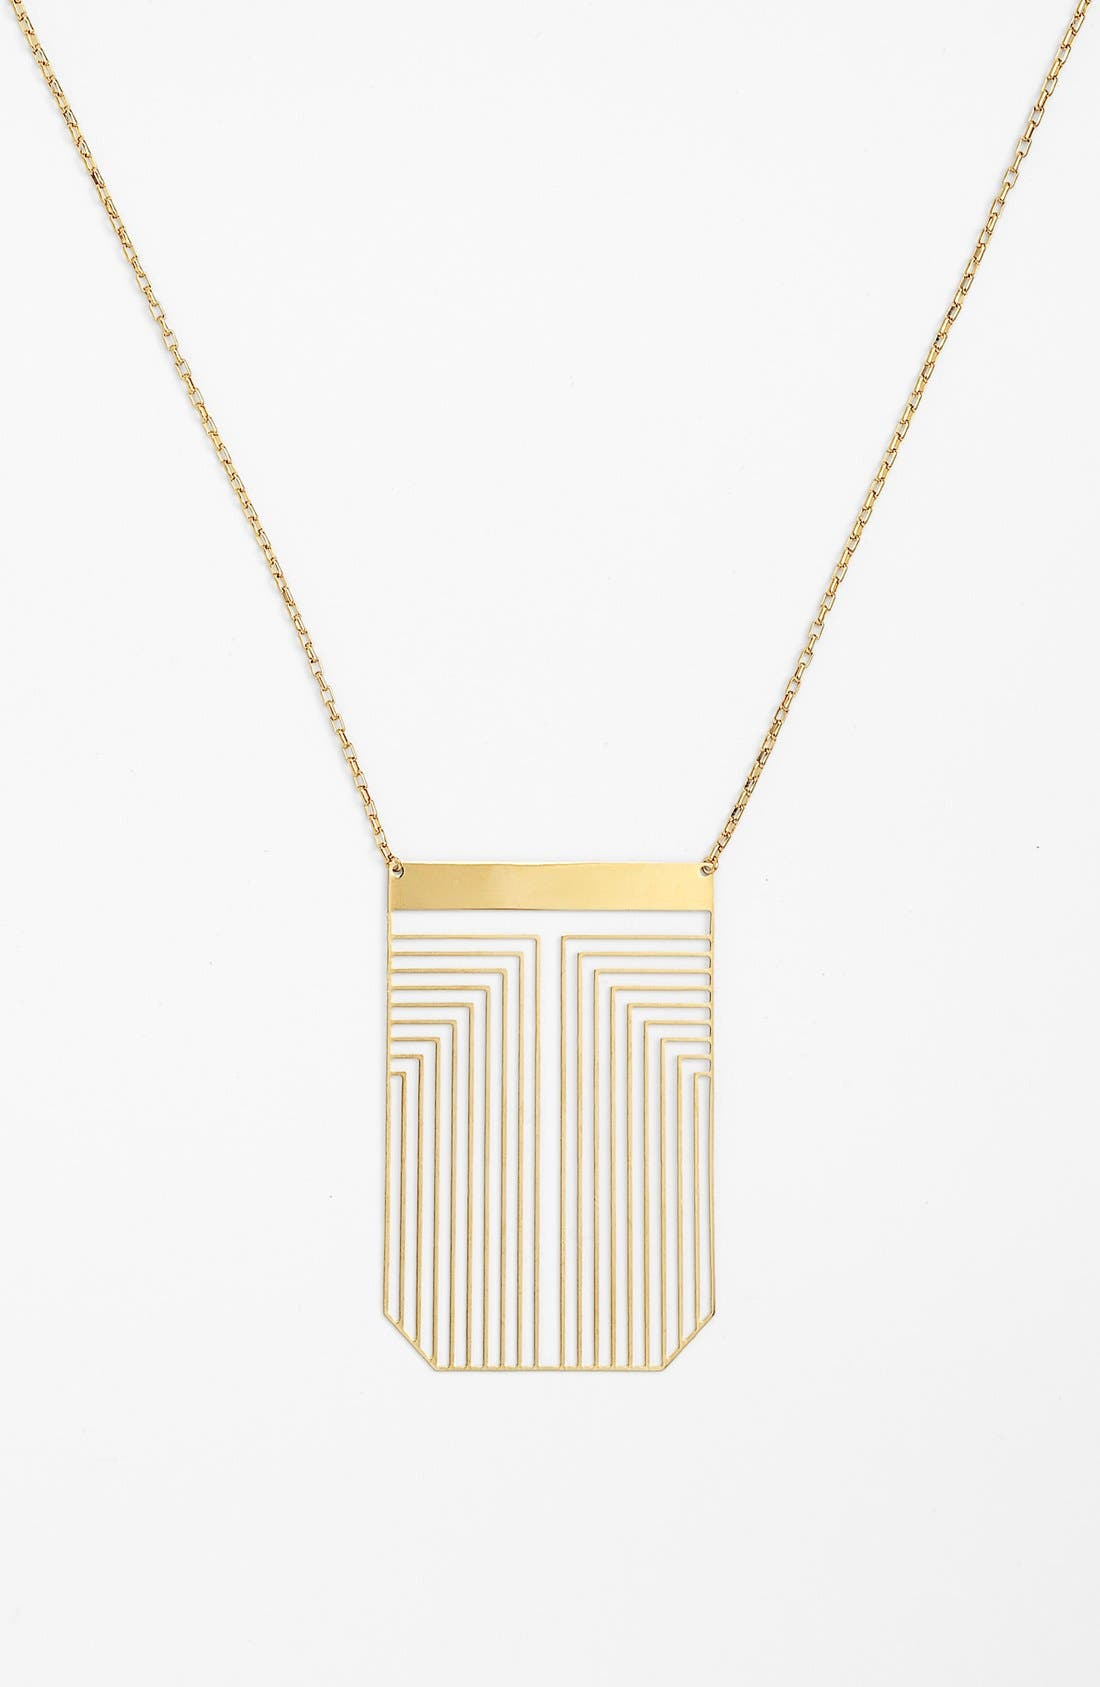 Alternate Image 1 Selected - Tory Burch 'Frete' Long Pendant Necklace